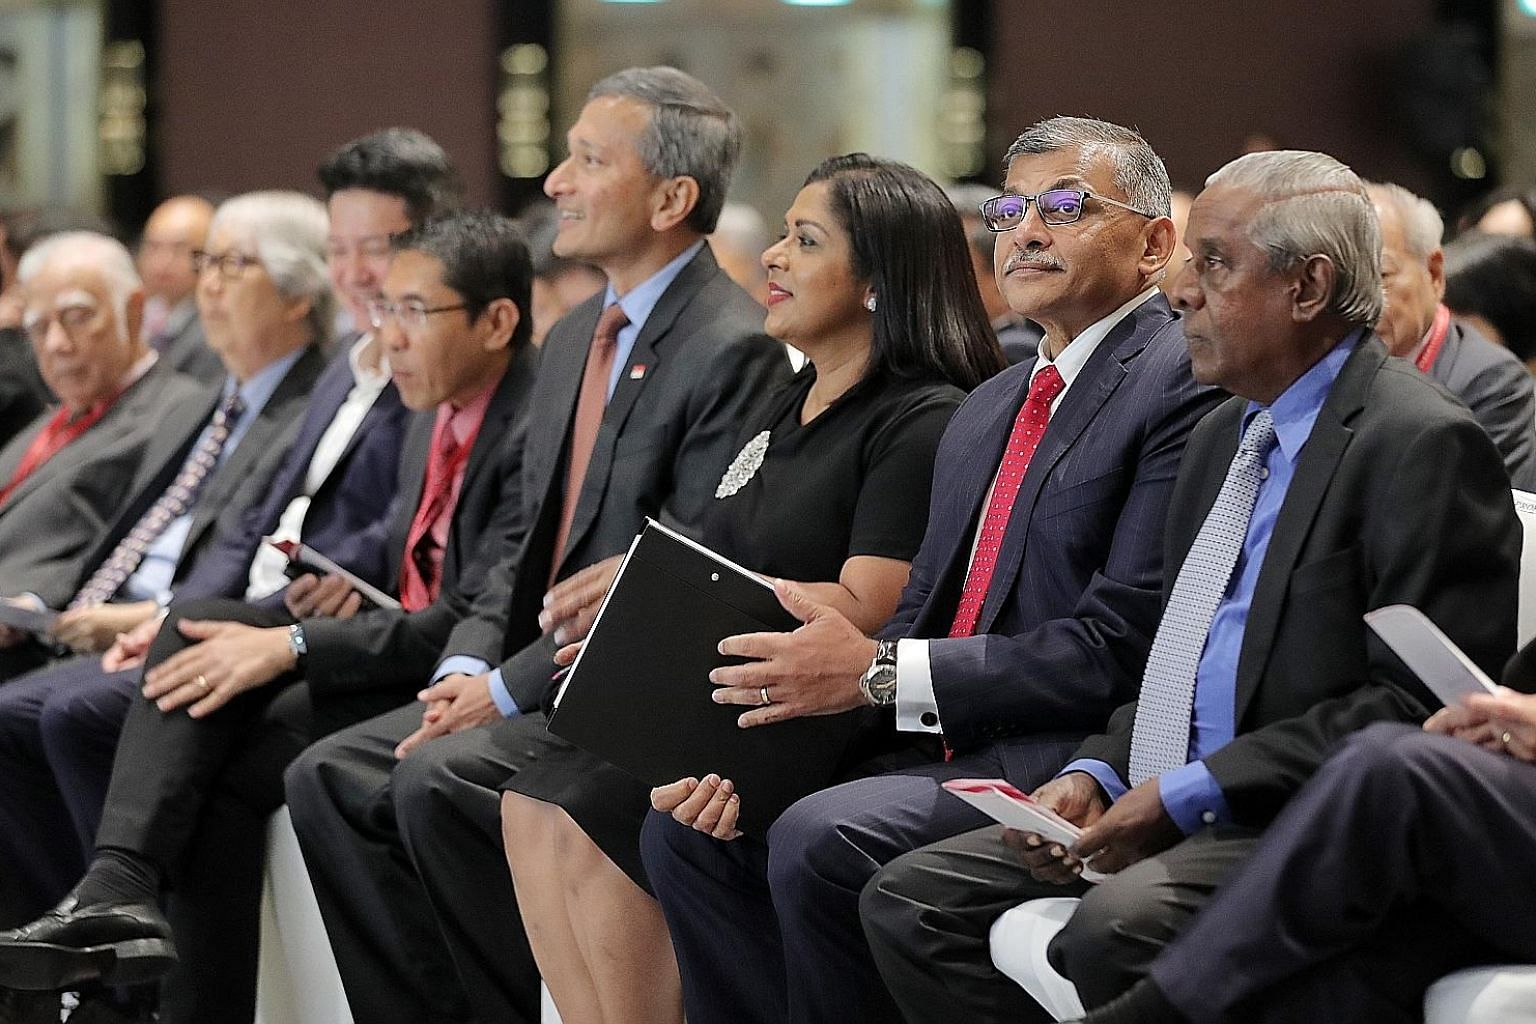 At the S. Rajaratnam Lecture yesterday were (from right) former deputy prime minister S. Jayakumar, Chief Justice Sundaresh Menon, Mrs Sundaresh Menon, Foreign Minister Vivian Balakrishnan, Senior Minister of State for Defence and Foreign Affairs Mal